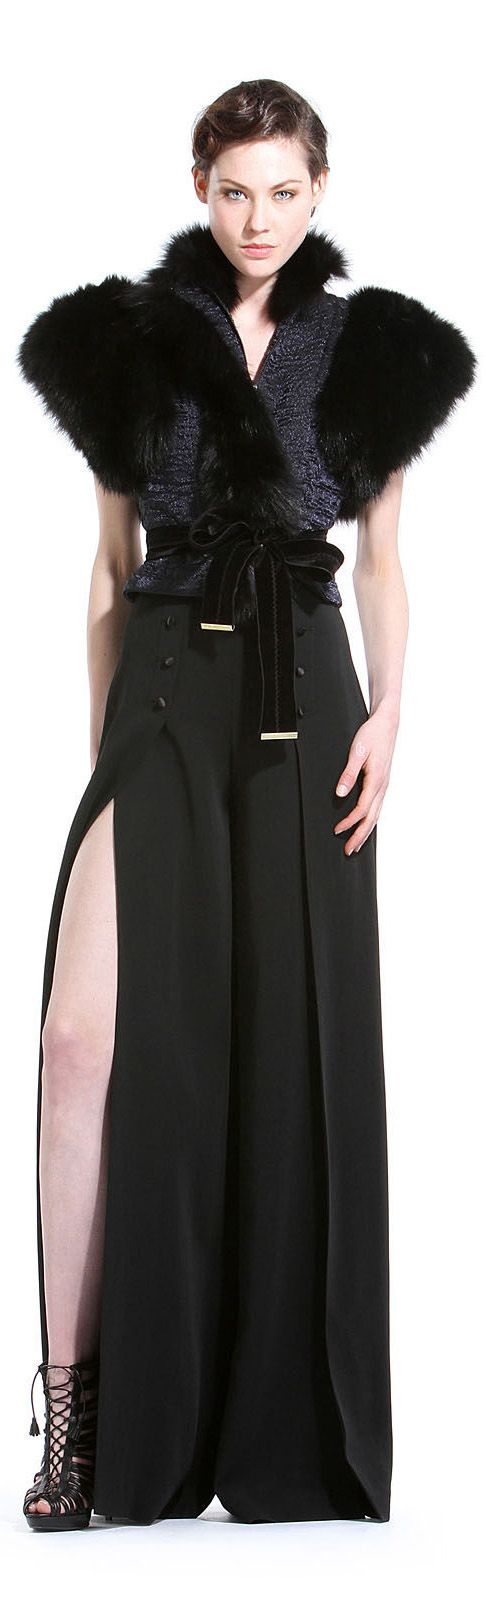 Zuhair Murad - Ready to Wear - Pre-Fall 2012   http://en.flip-zone.com/index.php?page=recherche=Zuhair+Murad=0=0 More of this collection on Fashion Chic & Fashion Dresses